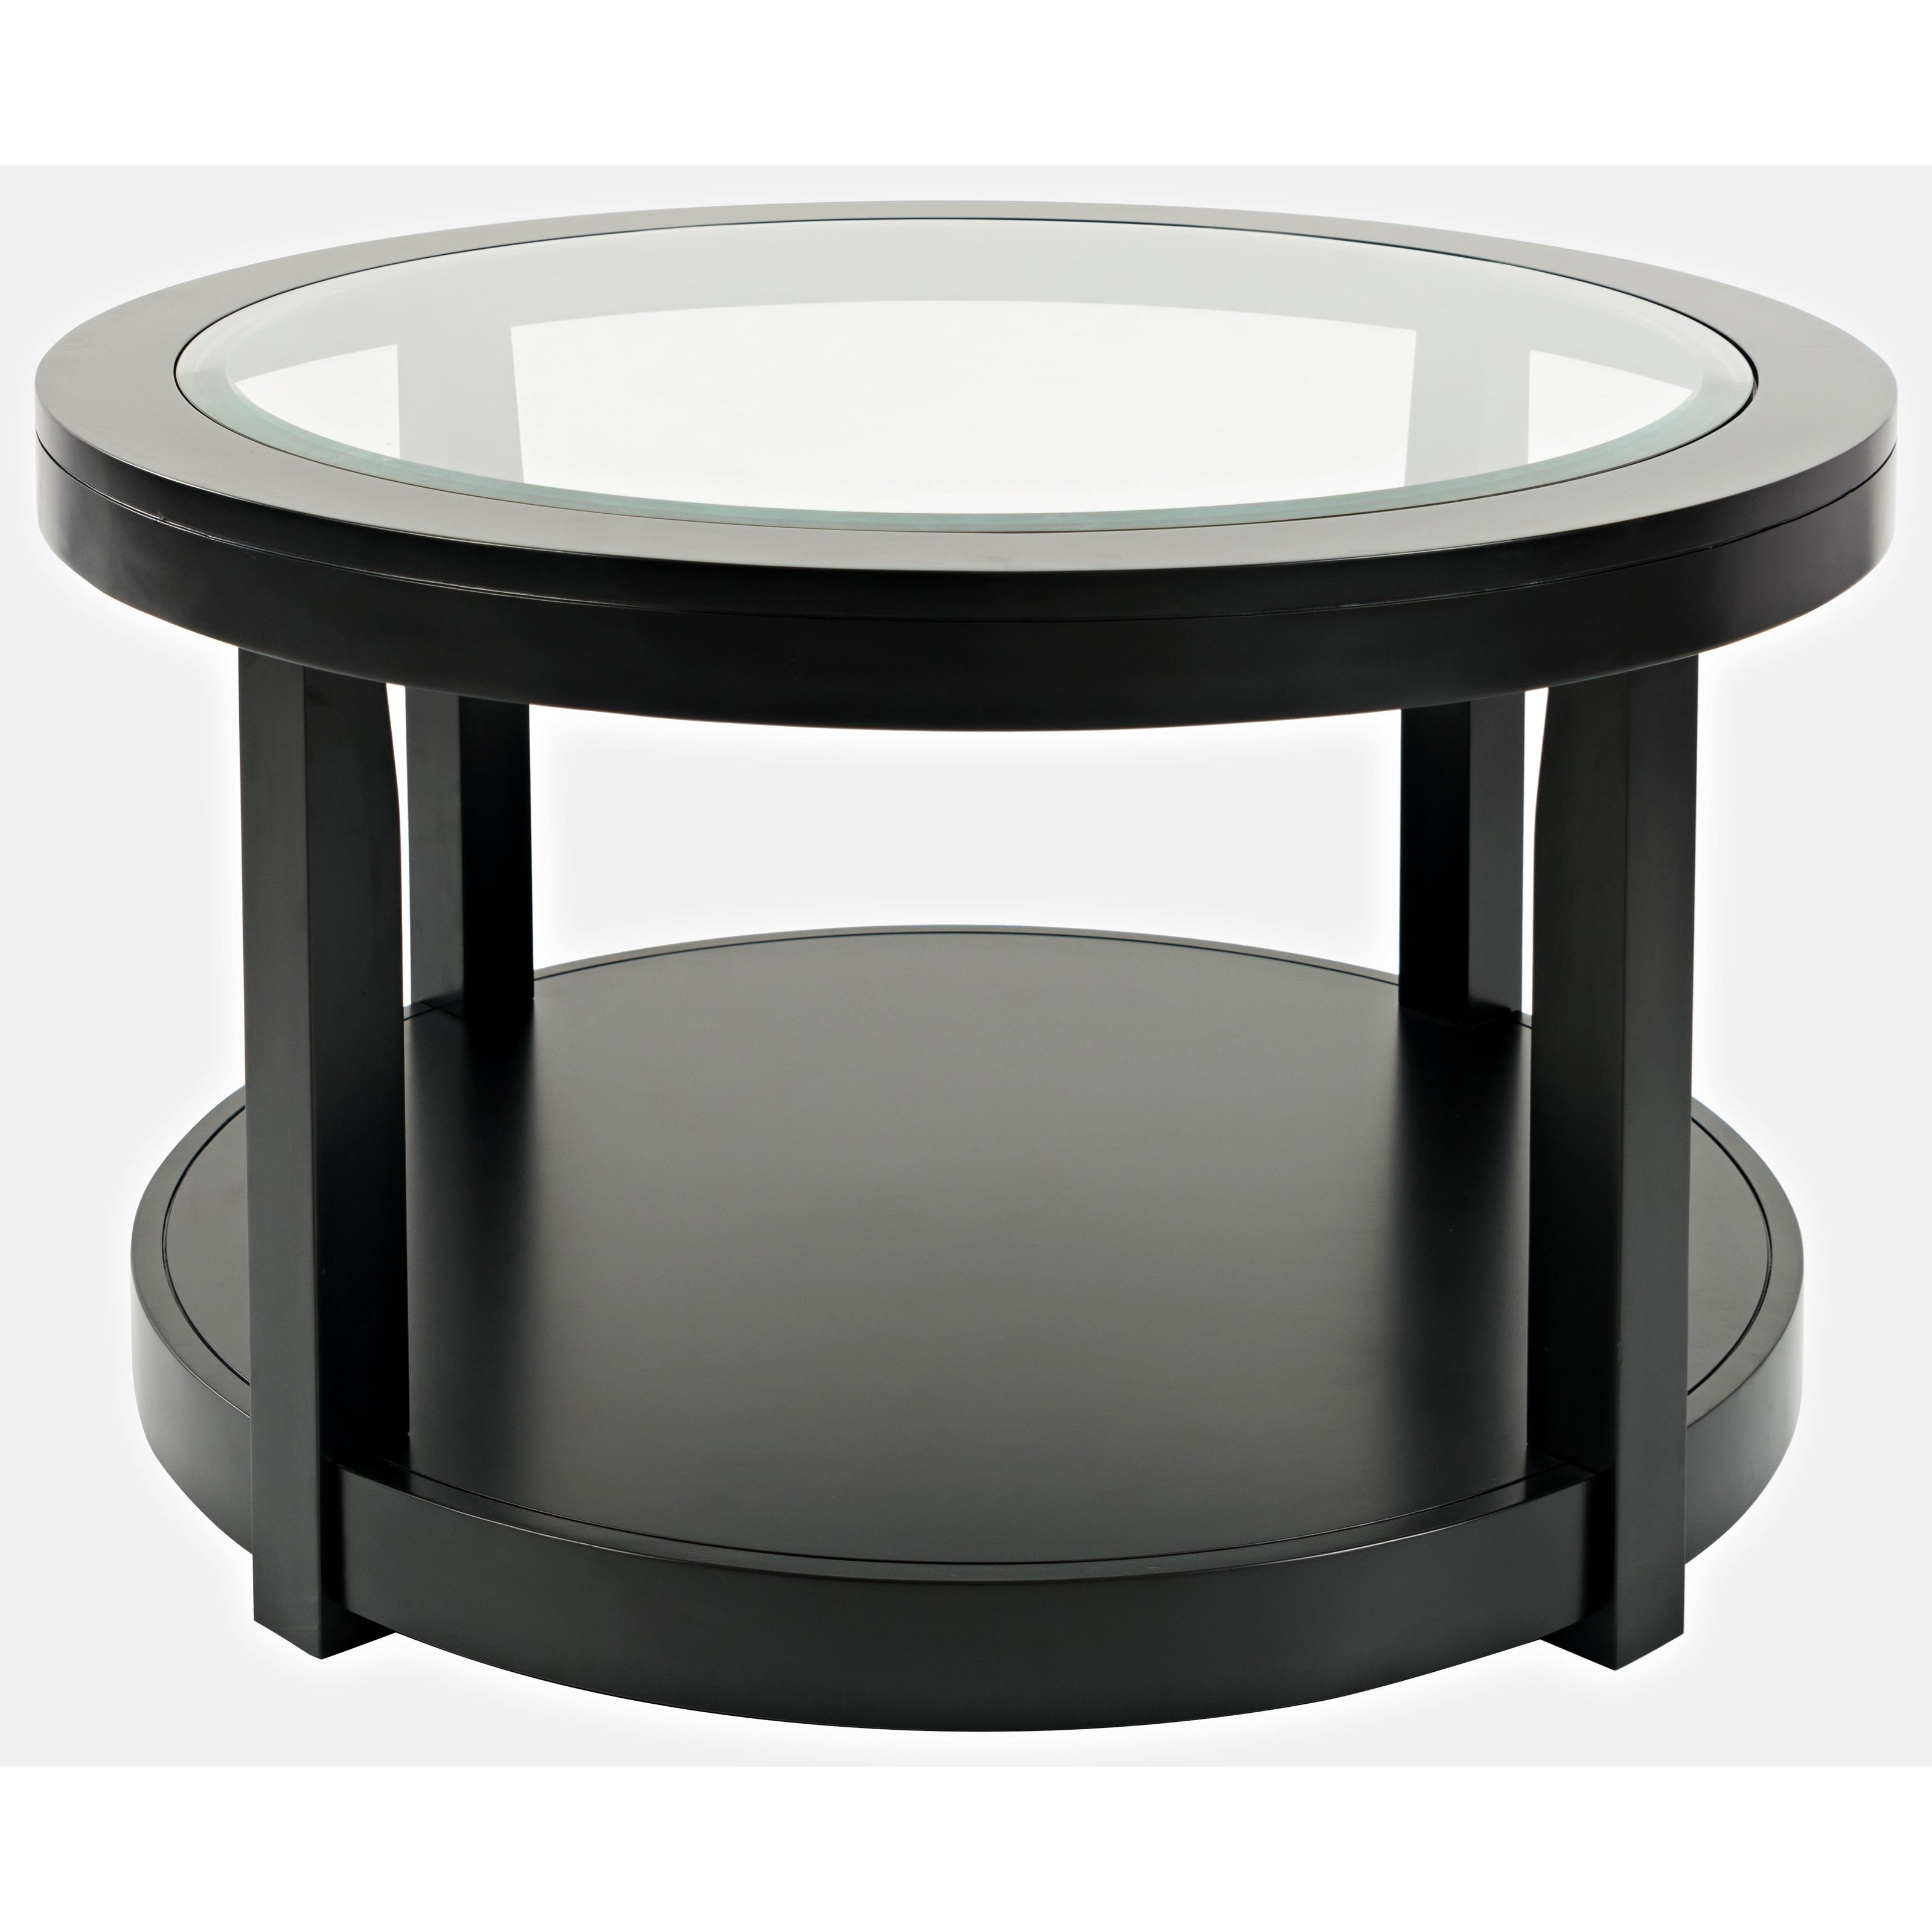 Icon Black Round Castered Cocktail Table at Walker's Furniture